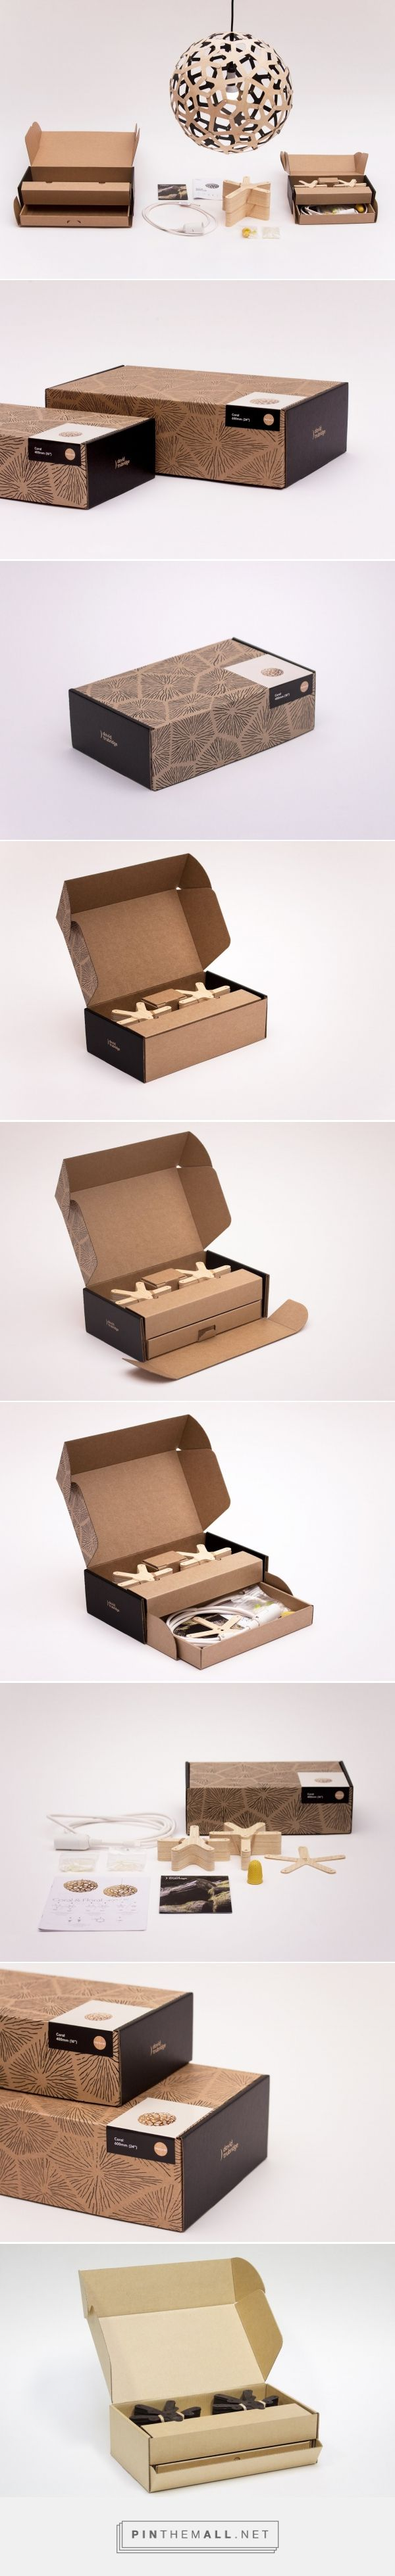 David Trubridge Lighting structural packaging design by Think Packaging - http://www.packagingoftheworld.com/2017/10/david-trubridge-lighting.html